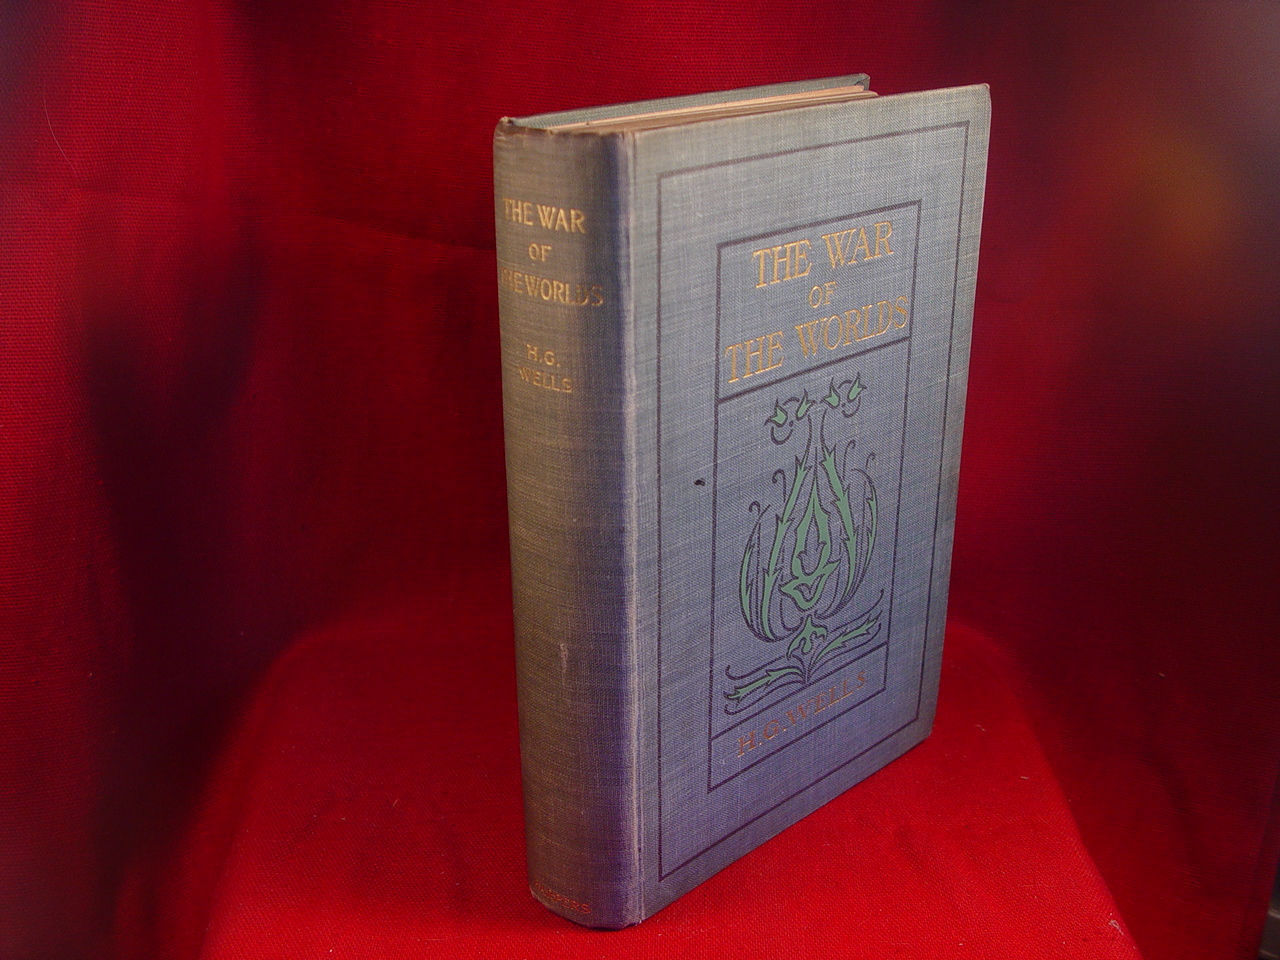 The War of the Worlds by H. G. Wells, 1st US edition 1898 signed by Ray Bradbury